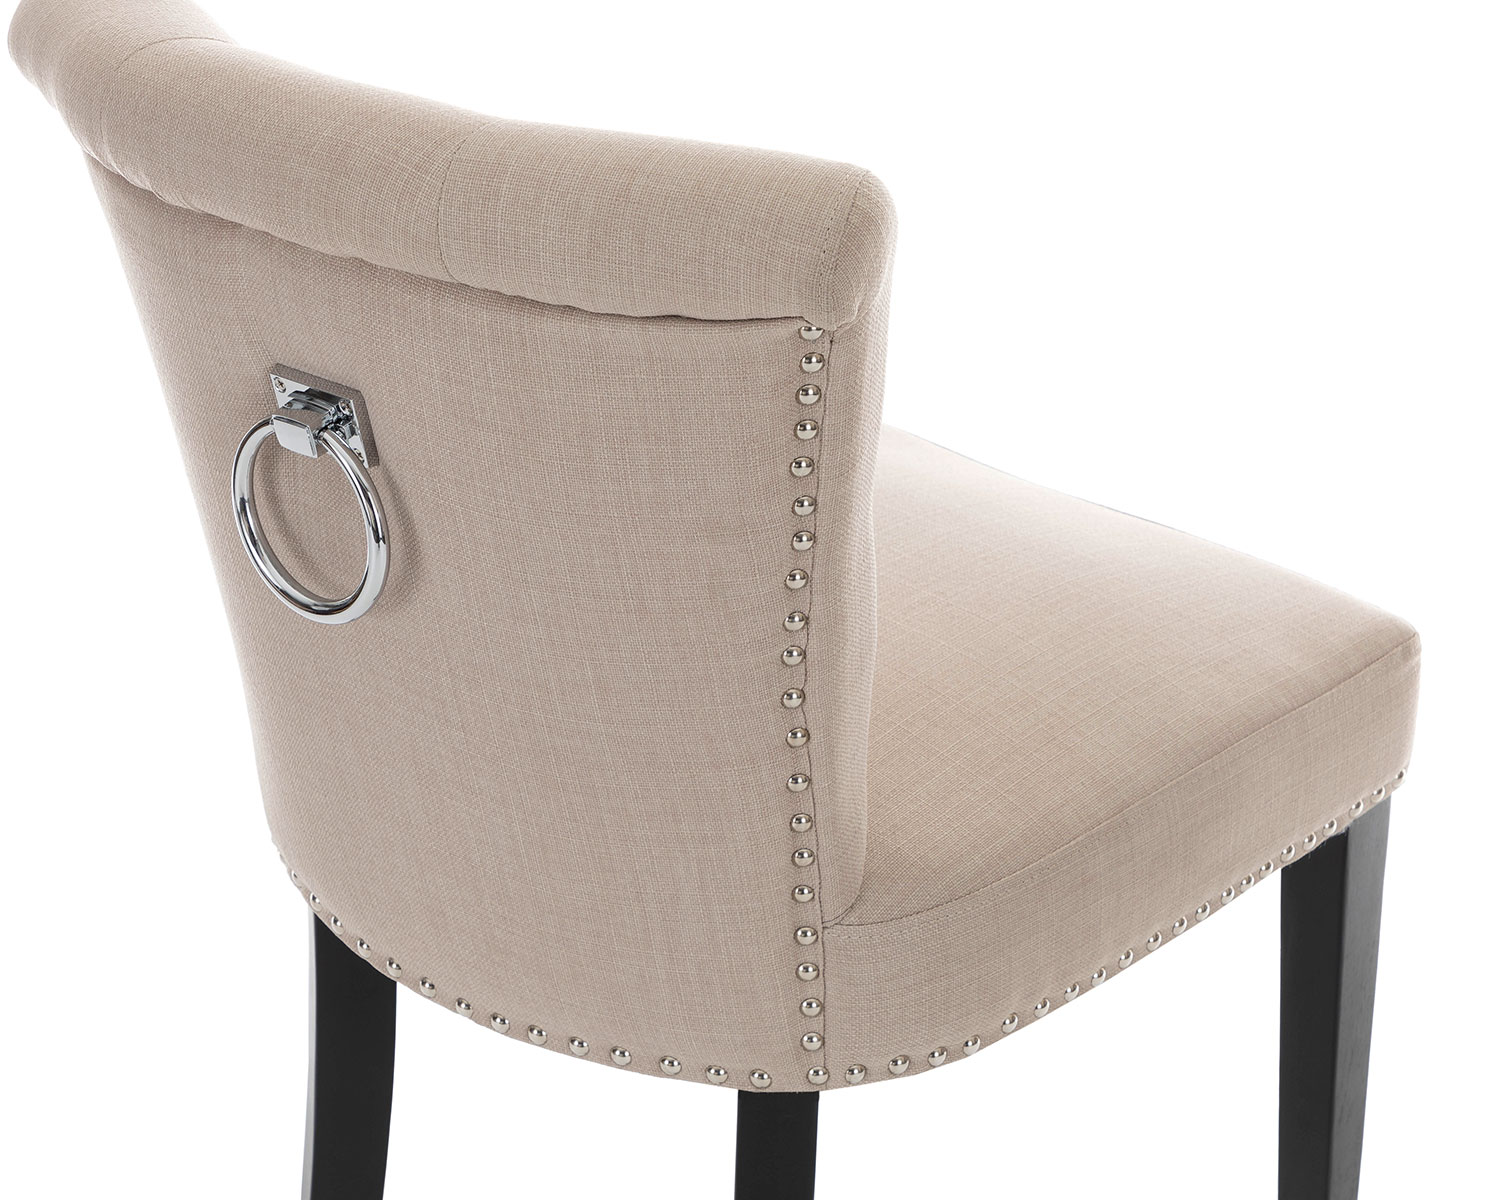 Light Gray Linen Dining Chairs: X 2 Camden Velvet Or Linen Dining Chair Grey Cream With